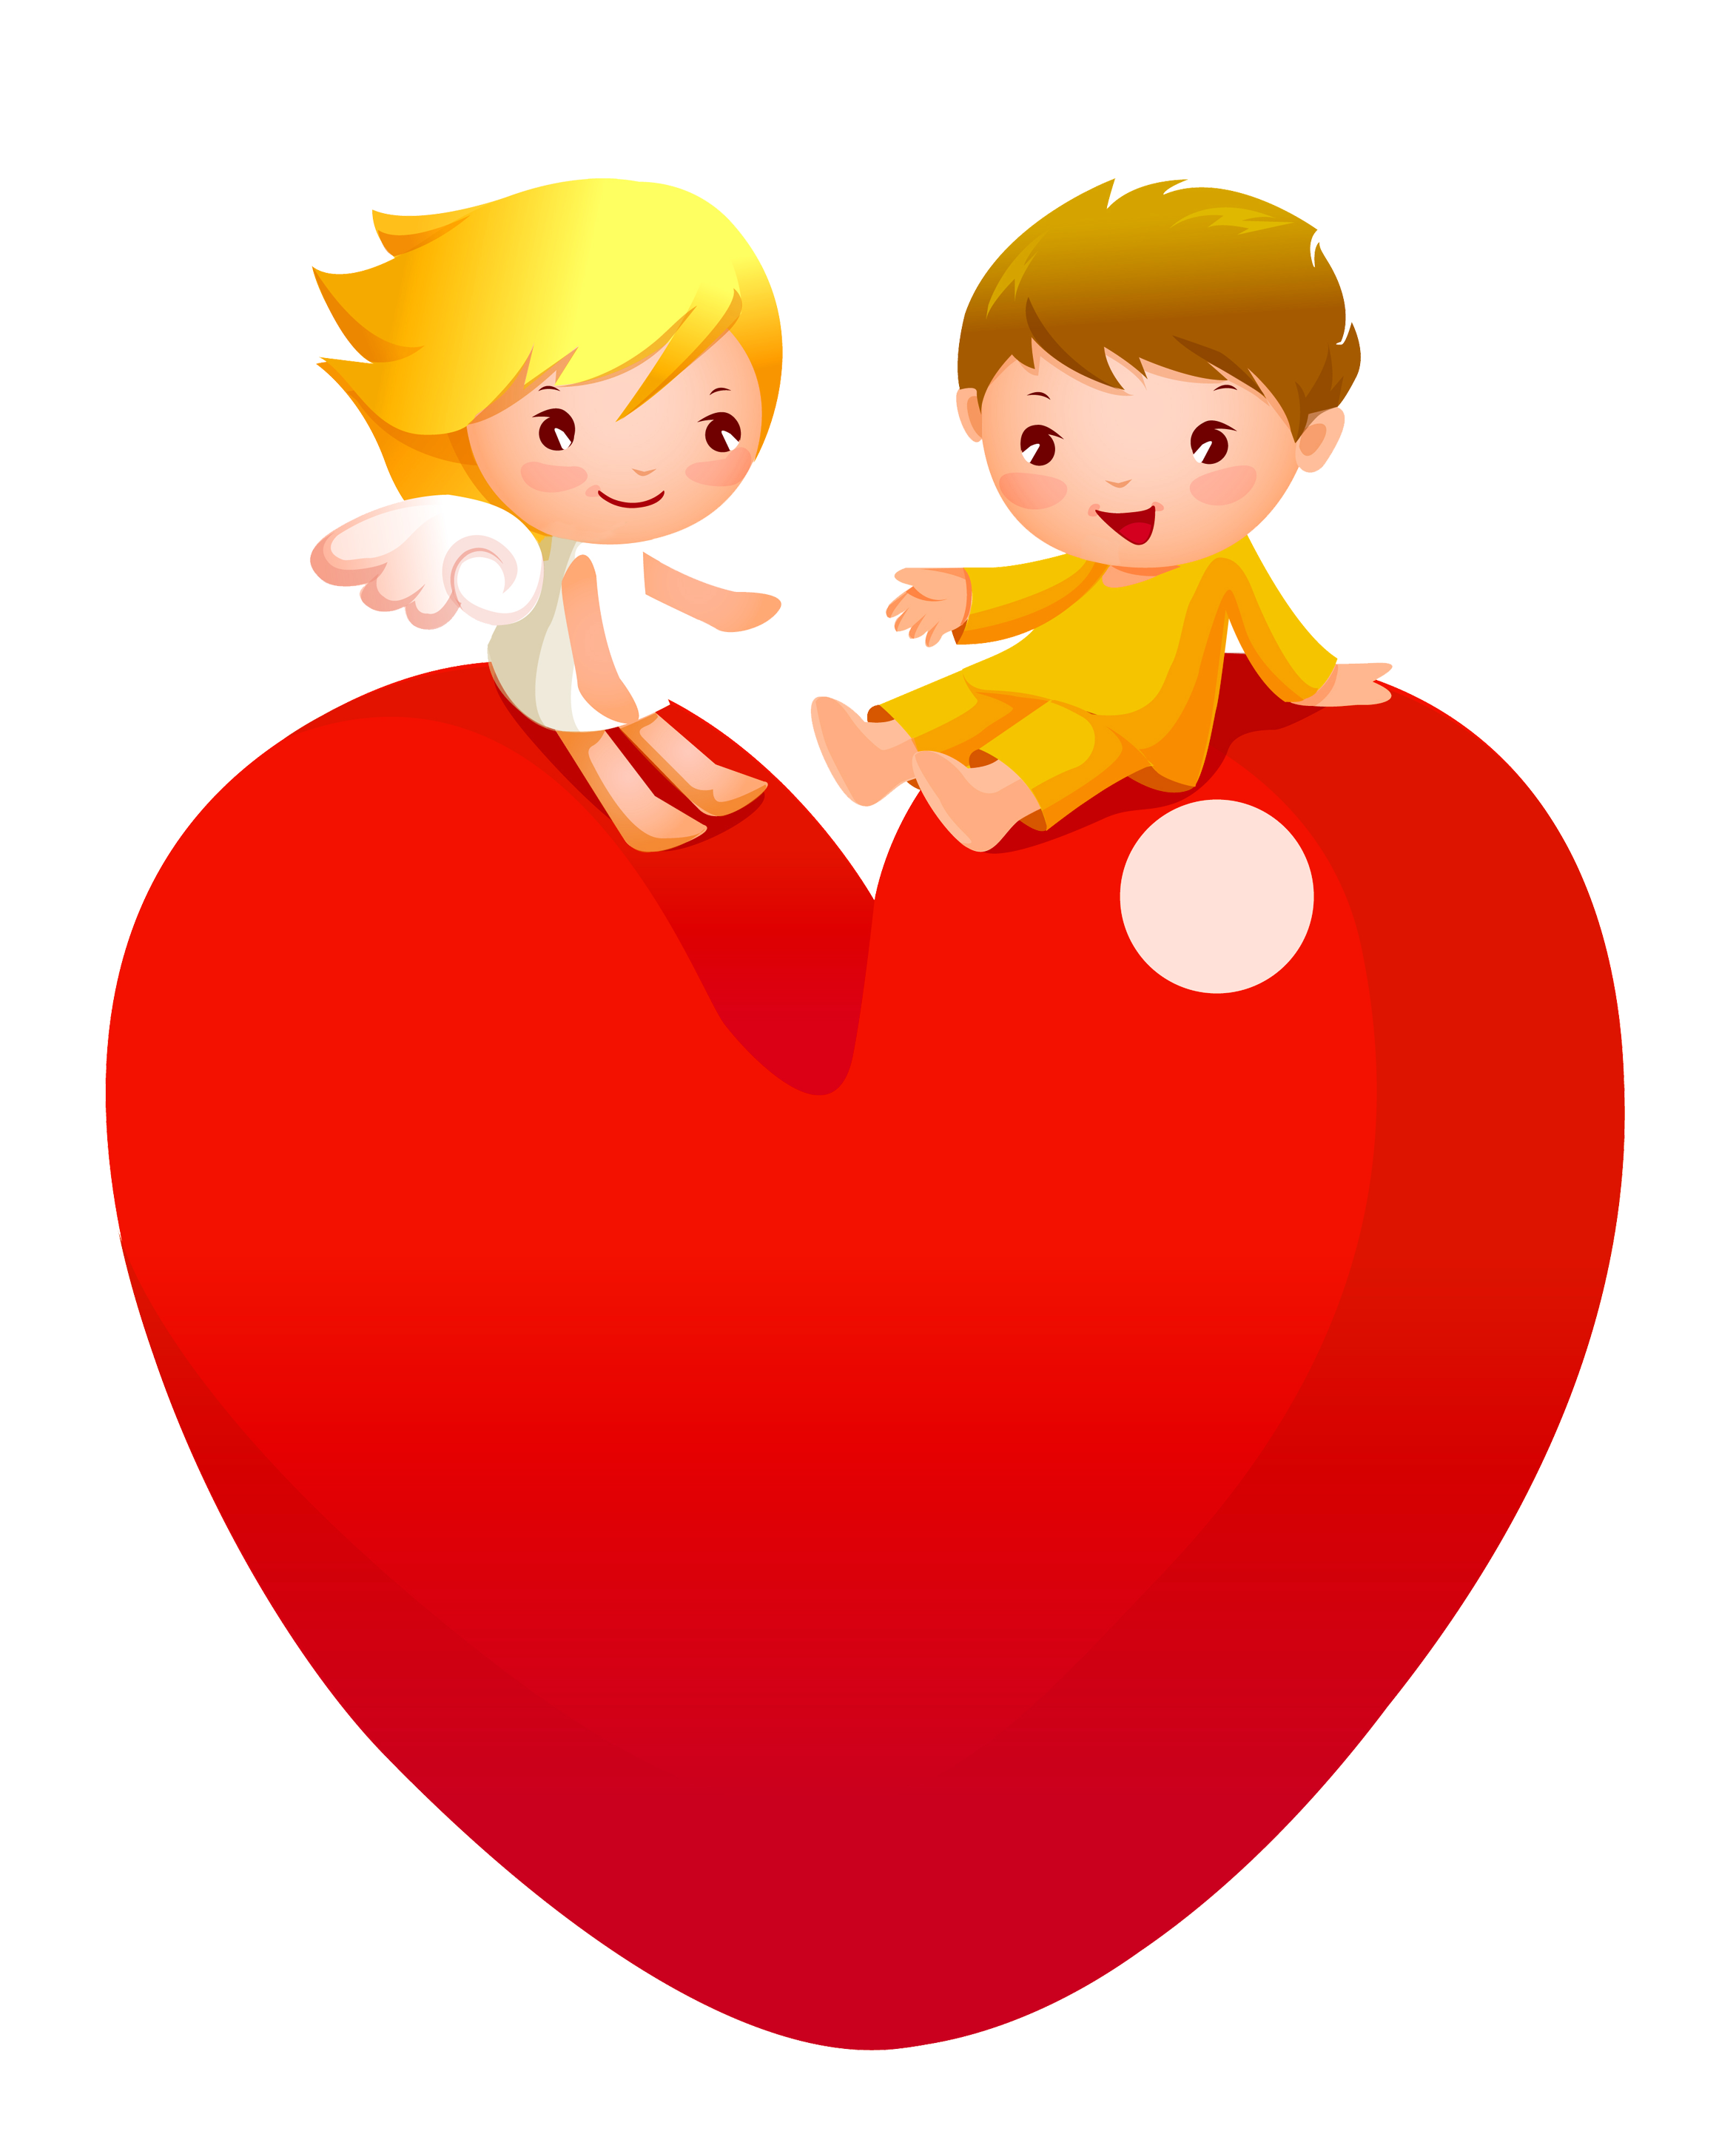 Red heart with angels. Hearts clipart man